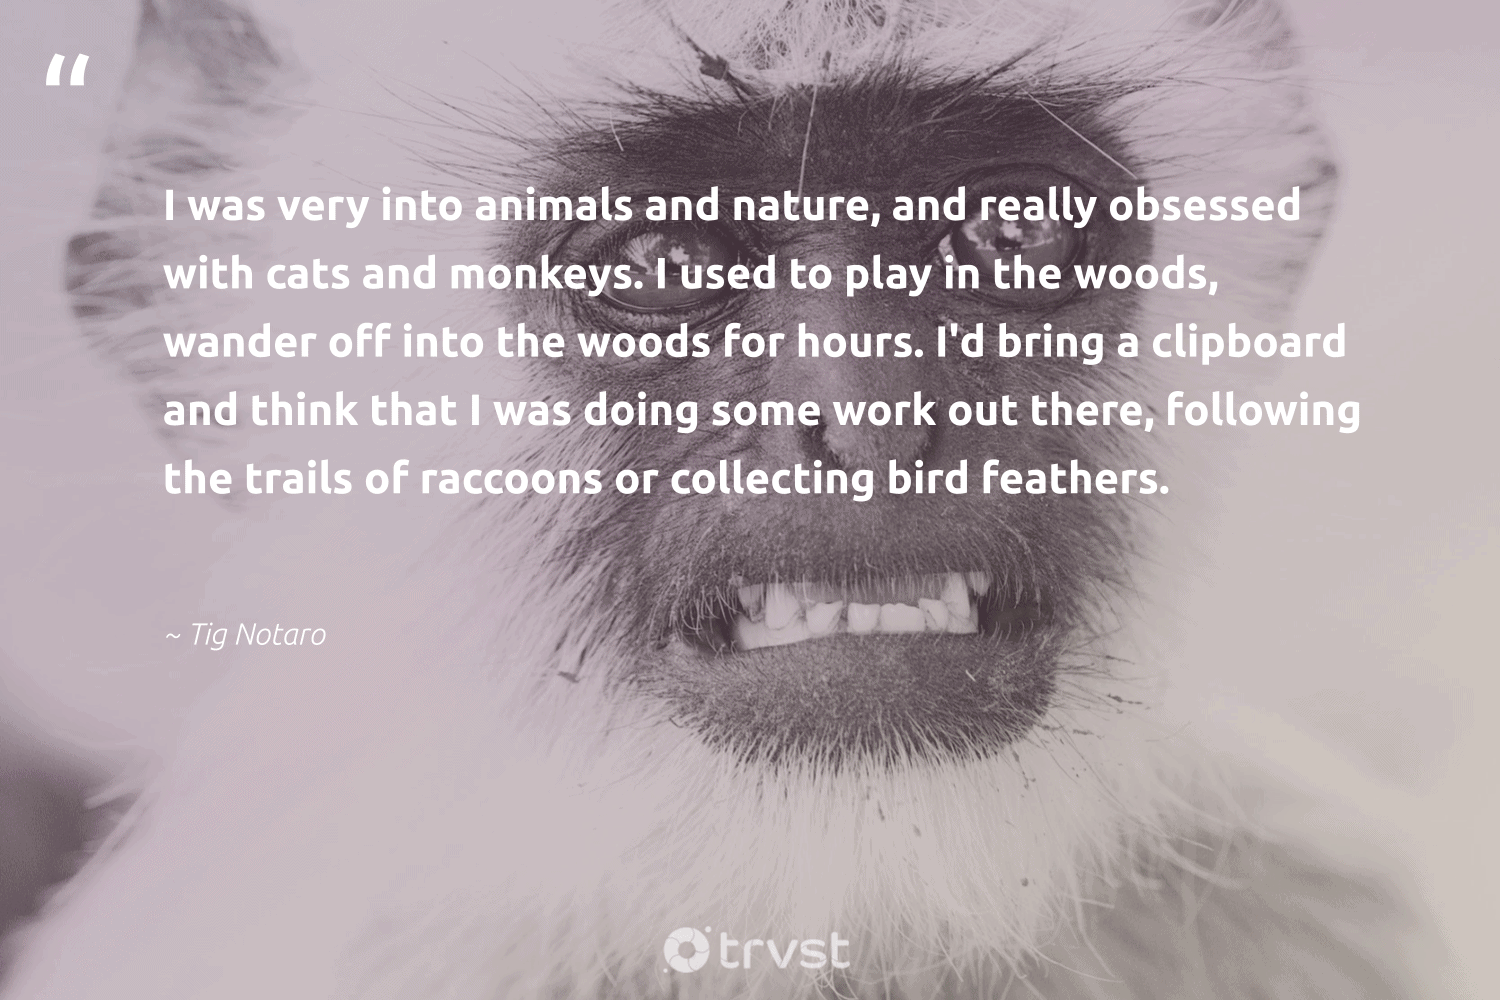 """I was very into animals and nature, and really obsessed with cats and monkeys. I used to play in the woods, wander off into the woods for hours. I'd bring a clipboard and think that I was doing some work out there, following the trails of raccoons or collecting bird feathers.""  - Tig Notaro #trvst #quotes #nature #bird #animals #feathers #monkeys #environment #amazingworld #sustainability #socialchange #planet"